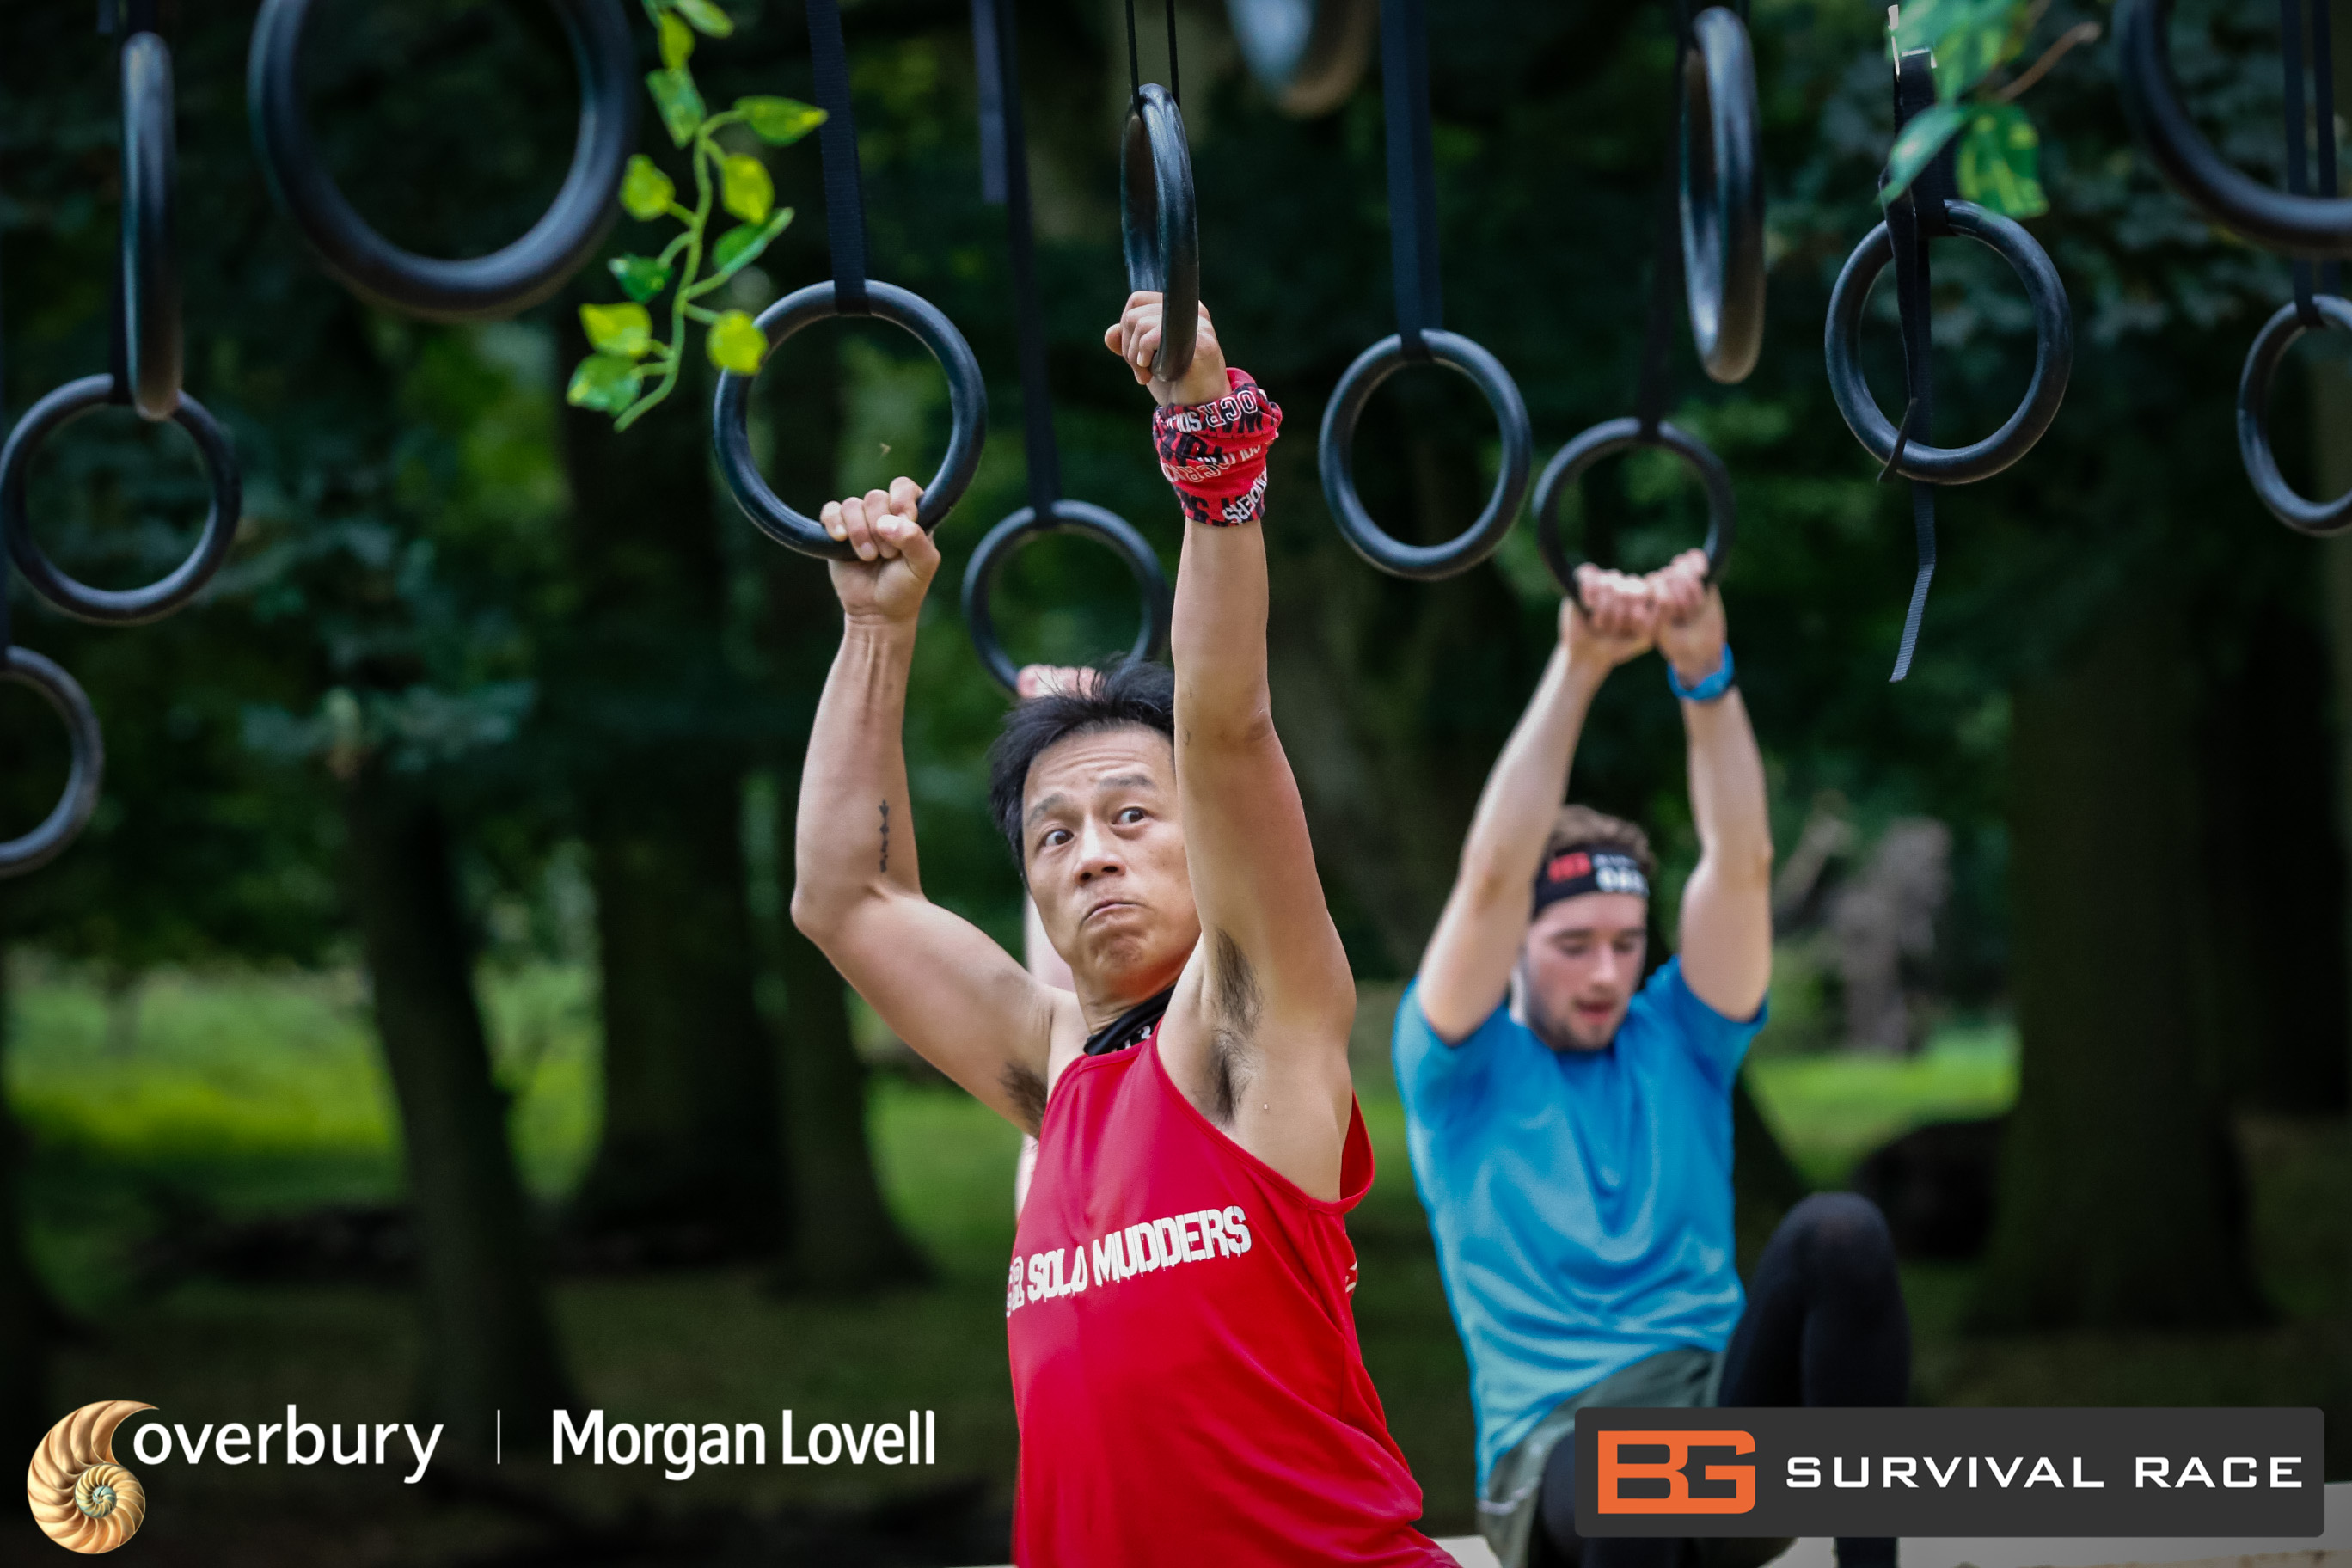 Bear Grylls Survival Race - Rings